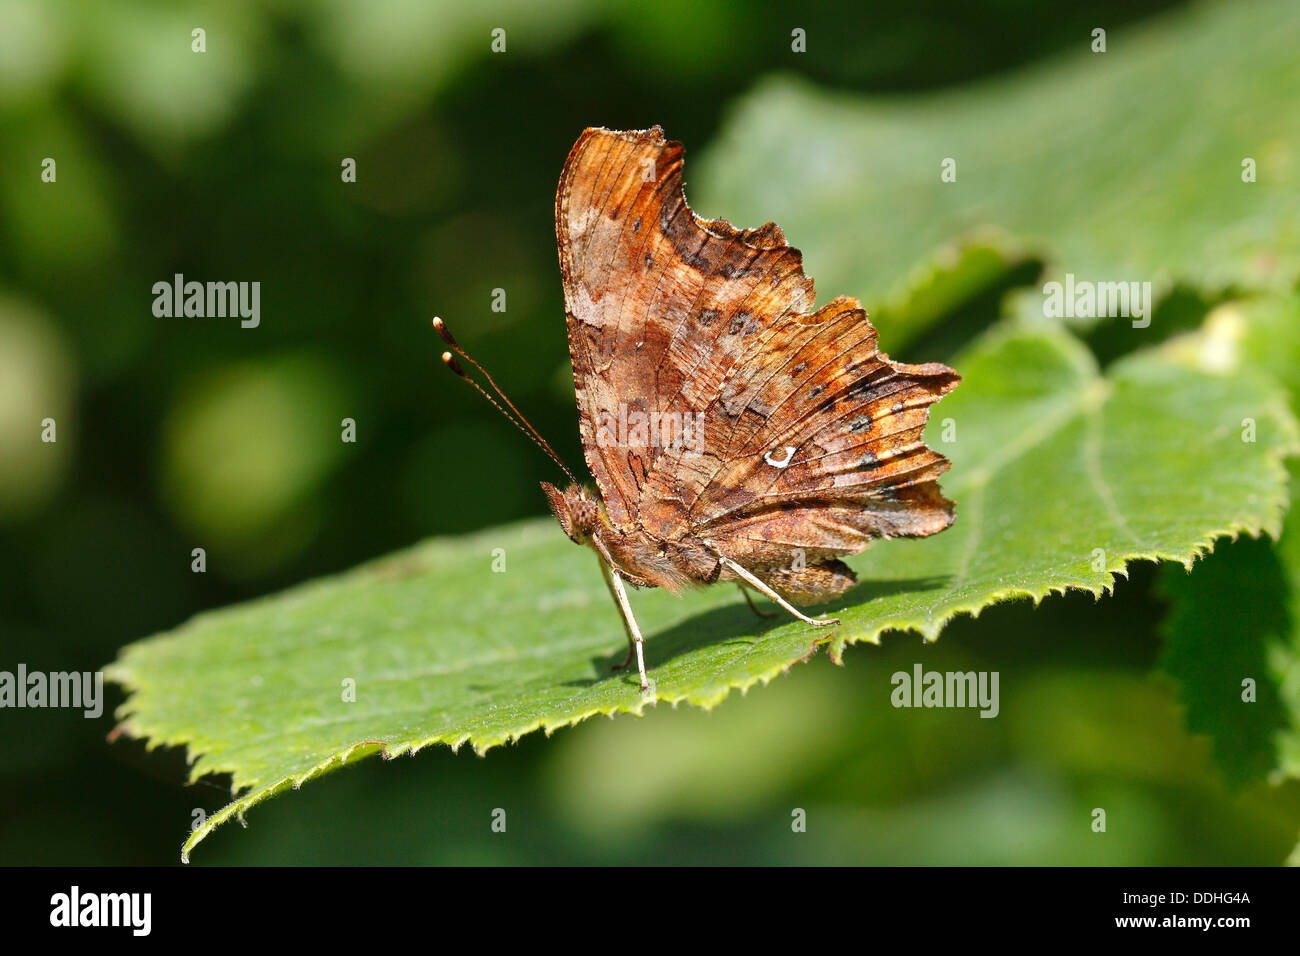 Comma butterfly (Polygonia c-album, Syn: Nymphalis c-album) perched on a leaf - Stock Image